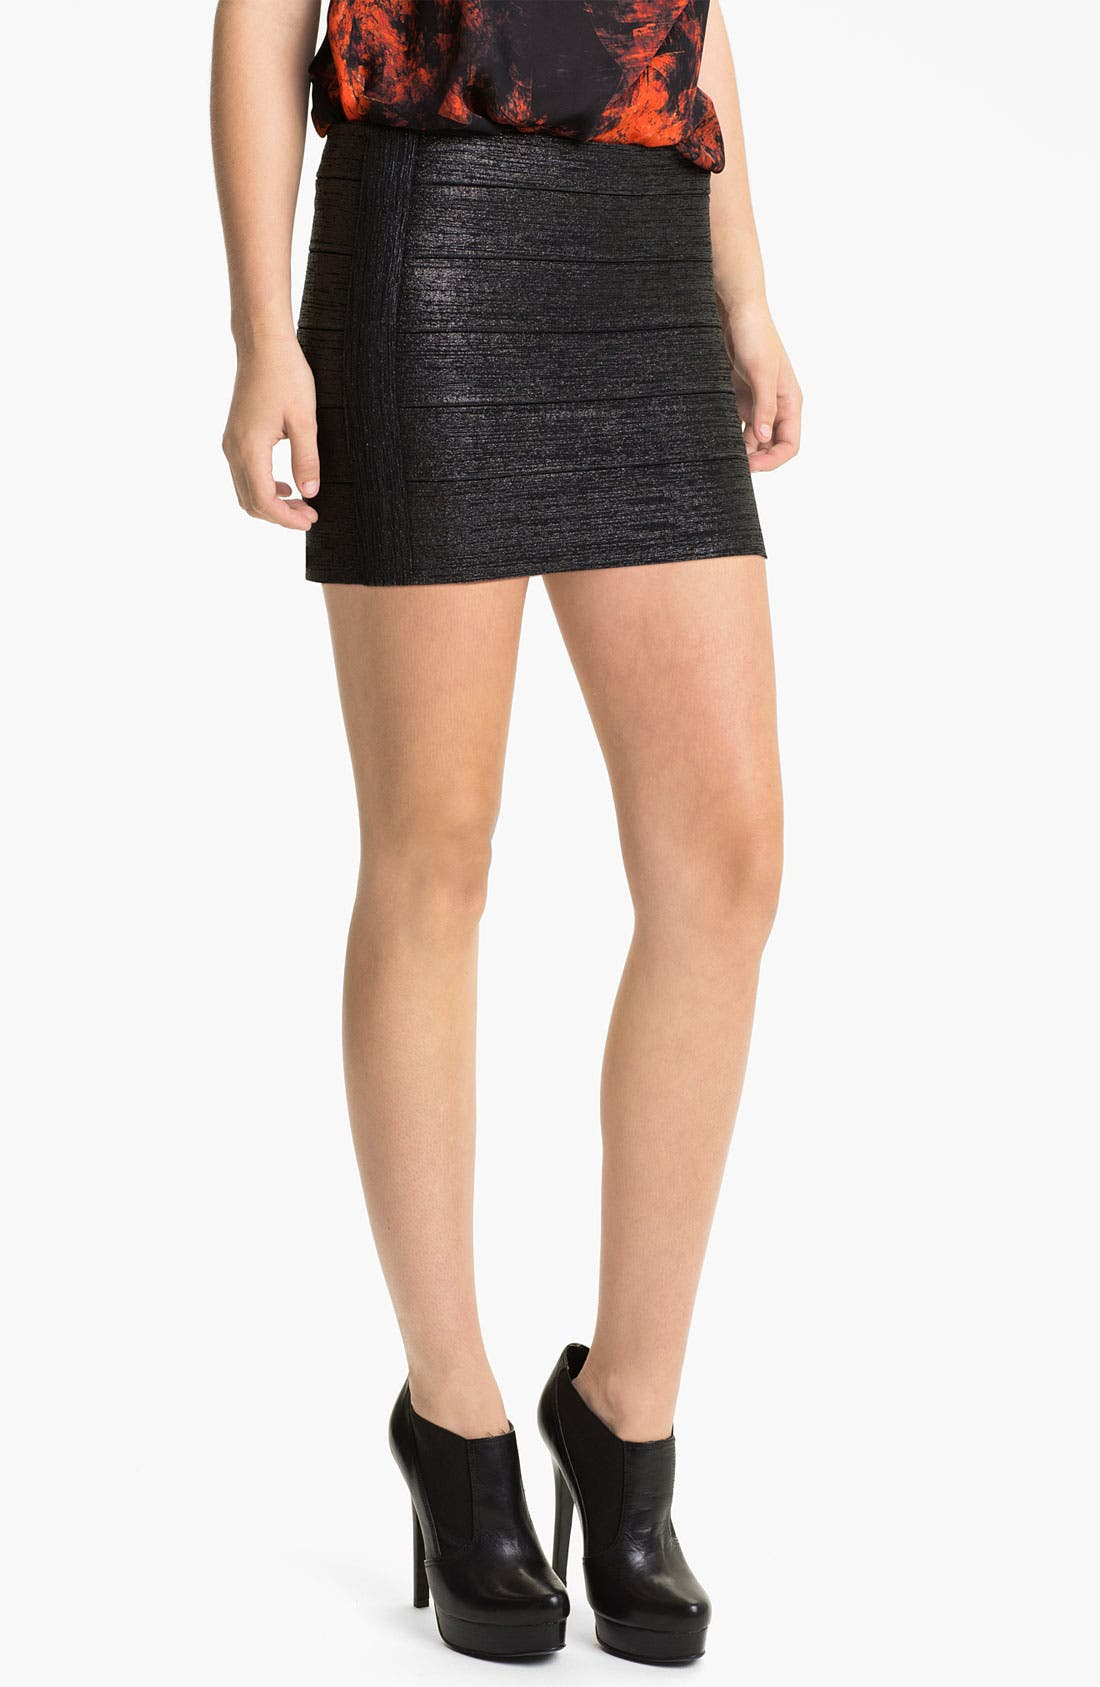 Alternate Image 1 Selected - Haute Hippie Metallic Bandage Miniskirt